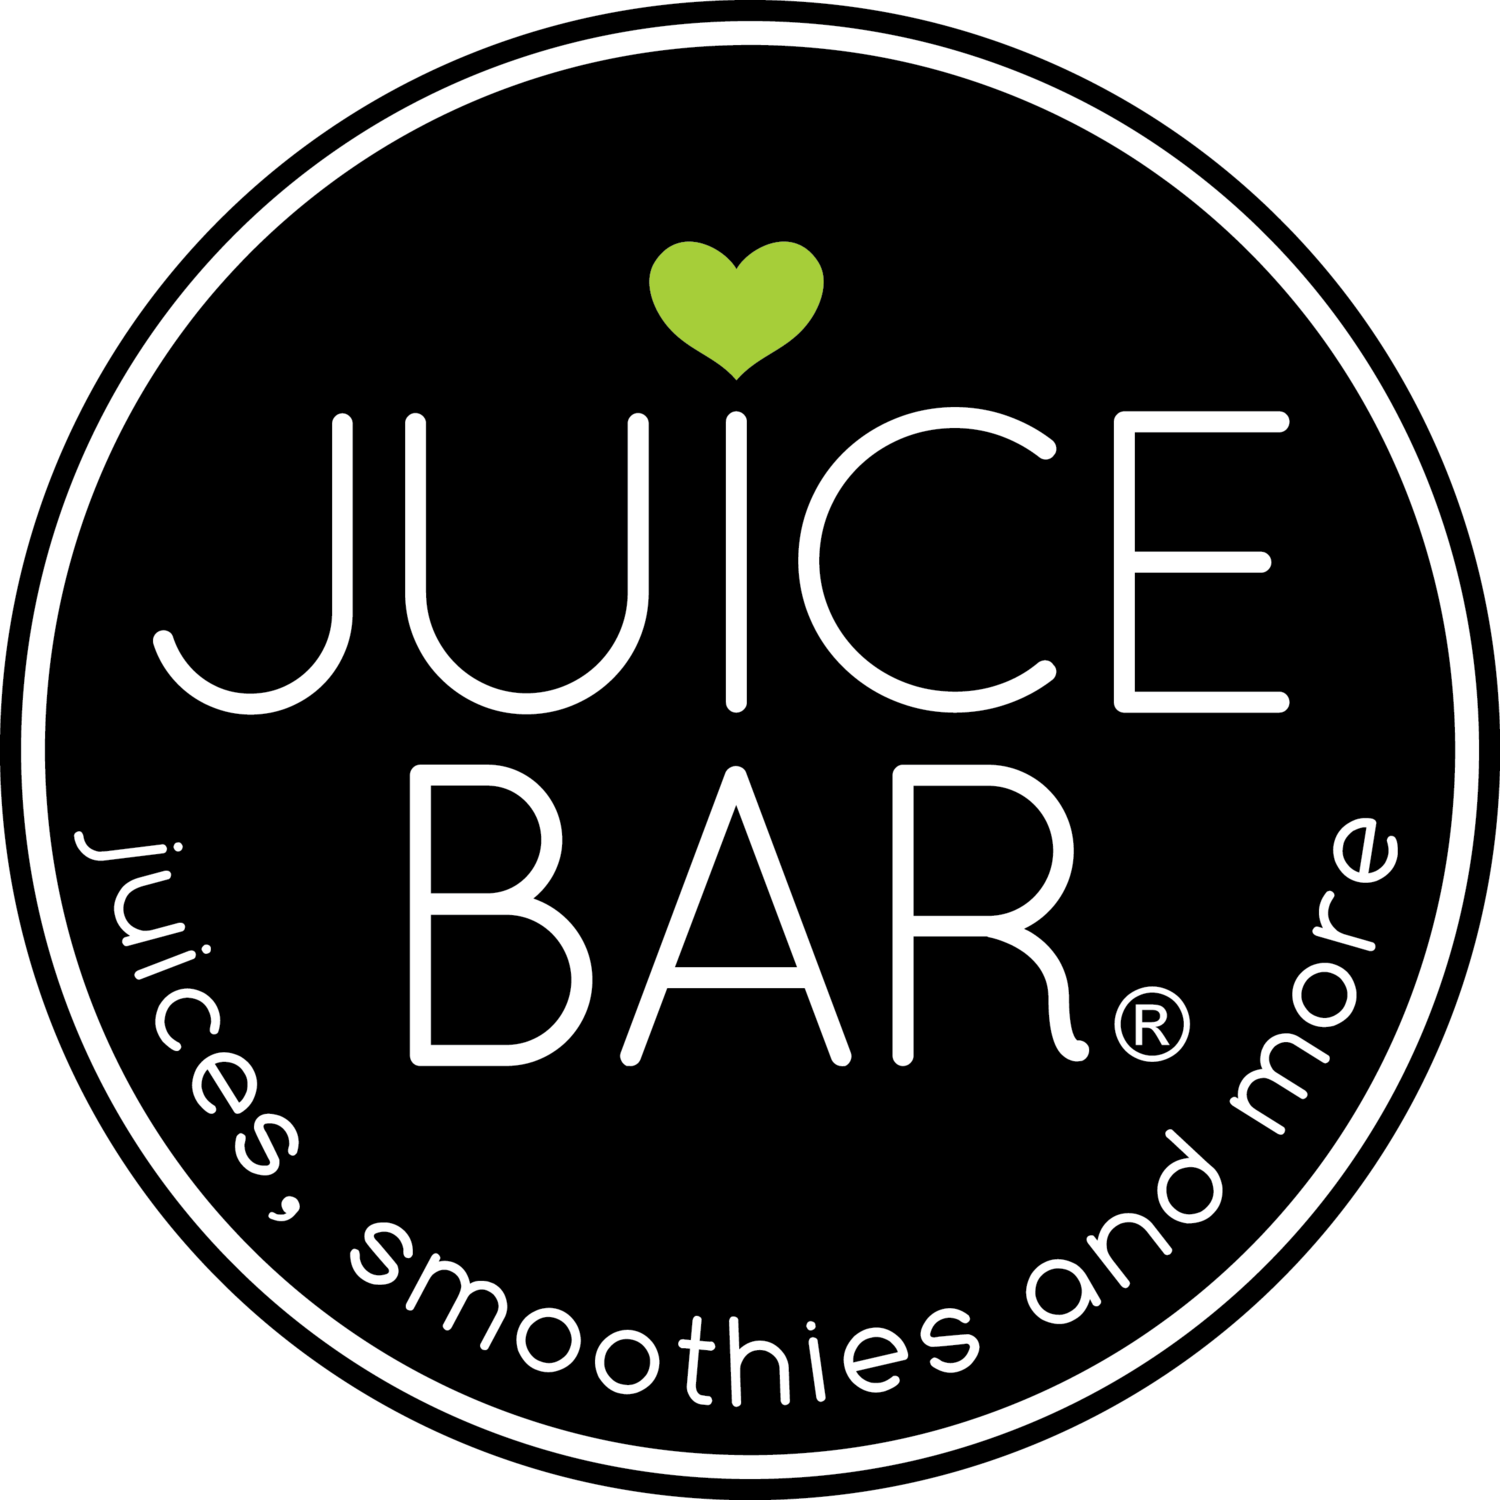 I Love Juice Bar Online Store